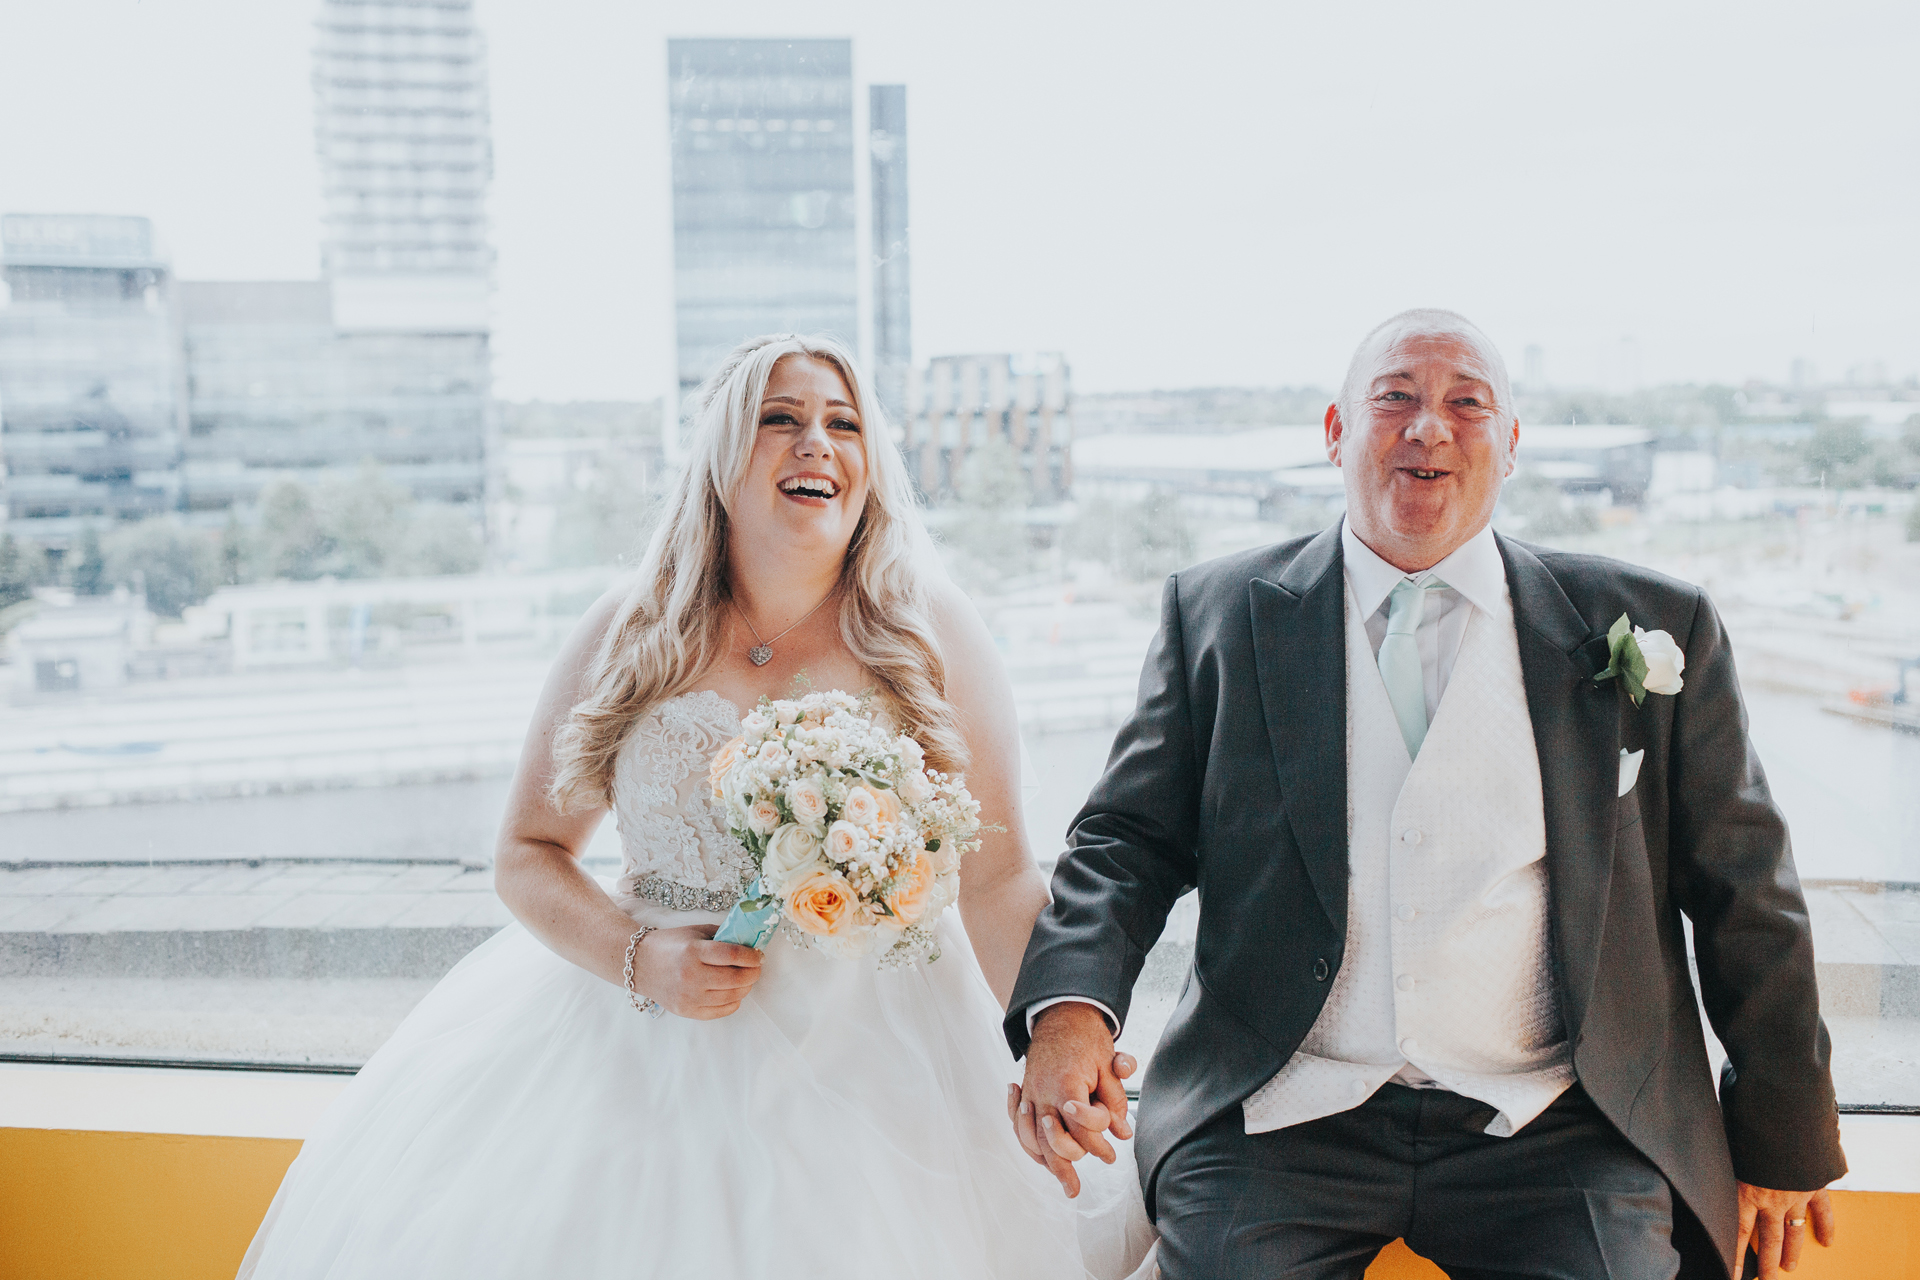 Bride and her father share a moment together before entering The Compass Room.